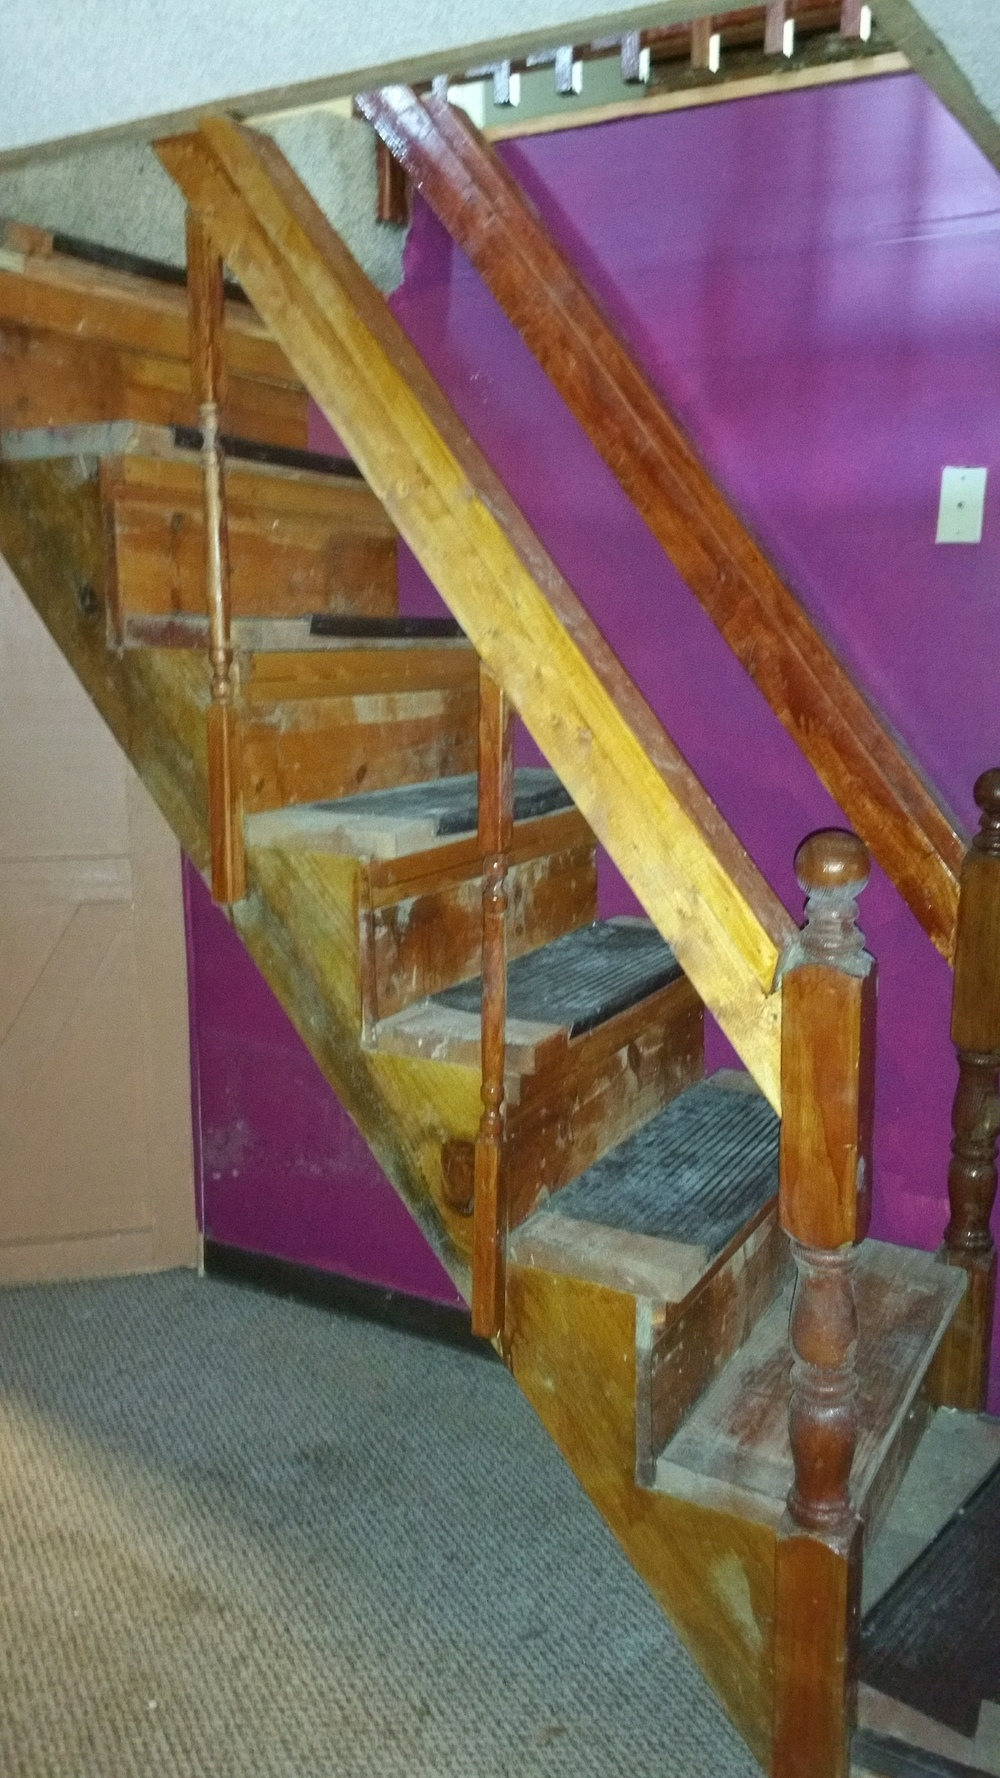 Totally improper installation of stairs that are also covered in mold.